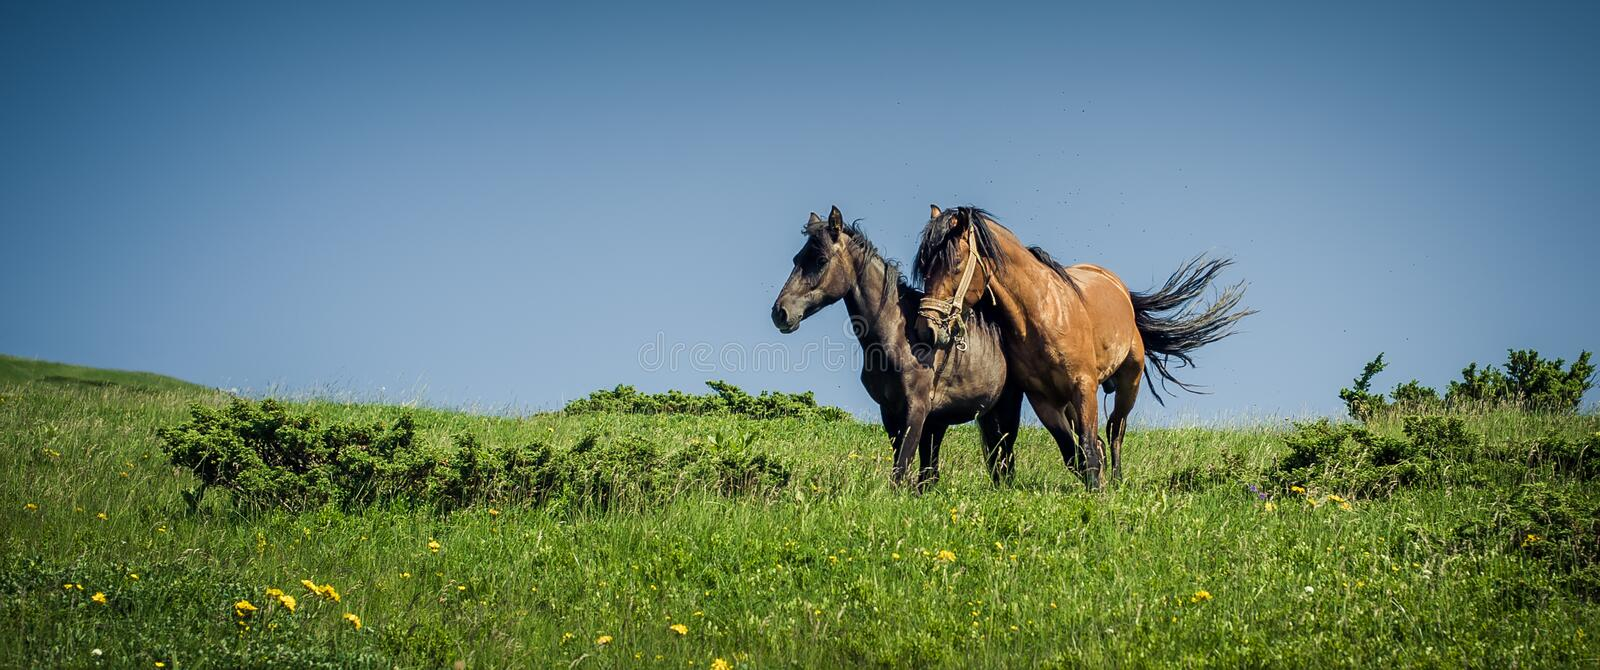 Horses in love. Two horse portrait on mountain environment. Beautiful nature background stock photo